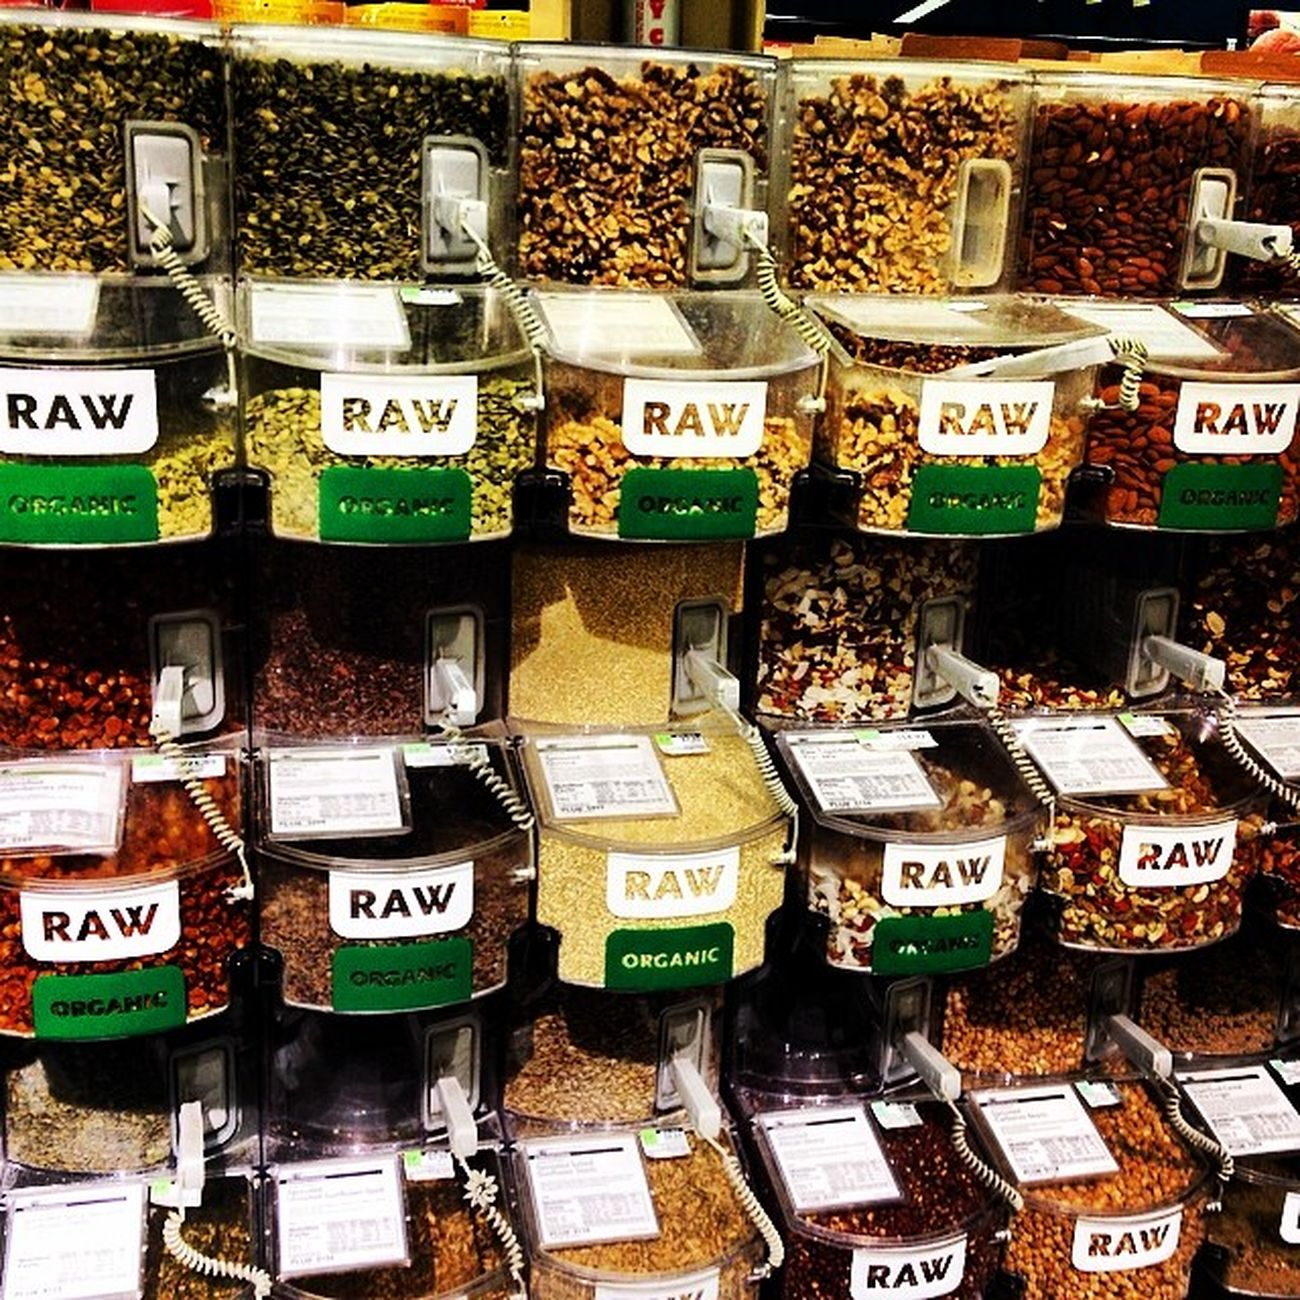 Wholefoods Santanarbara Rawfood Raw nuts & seeds